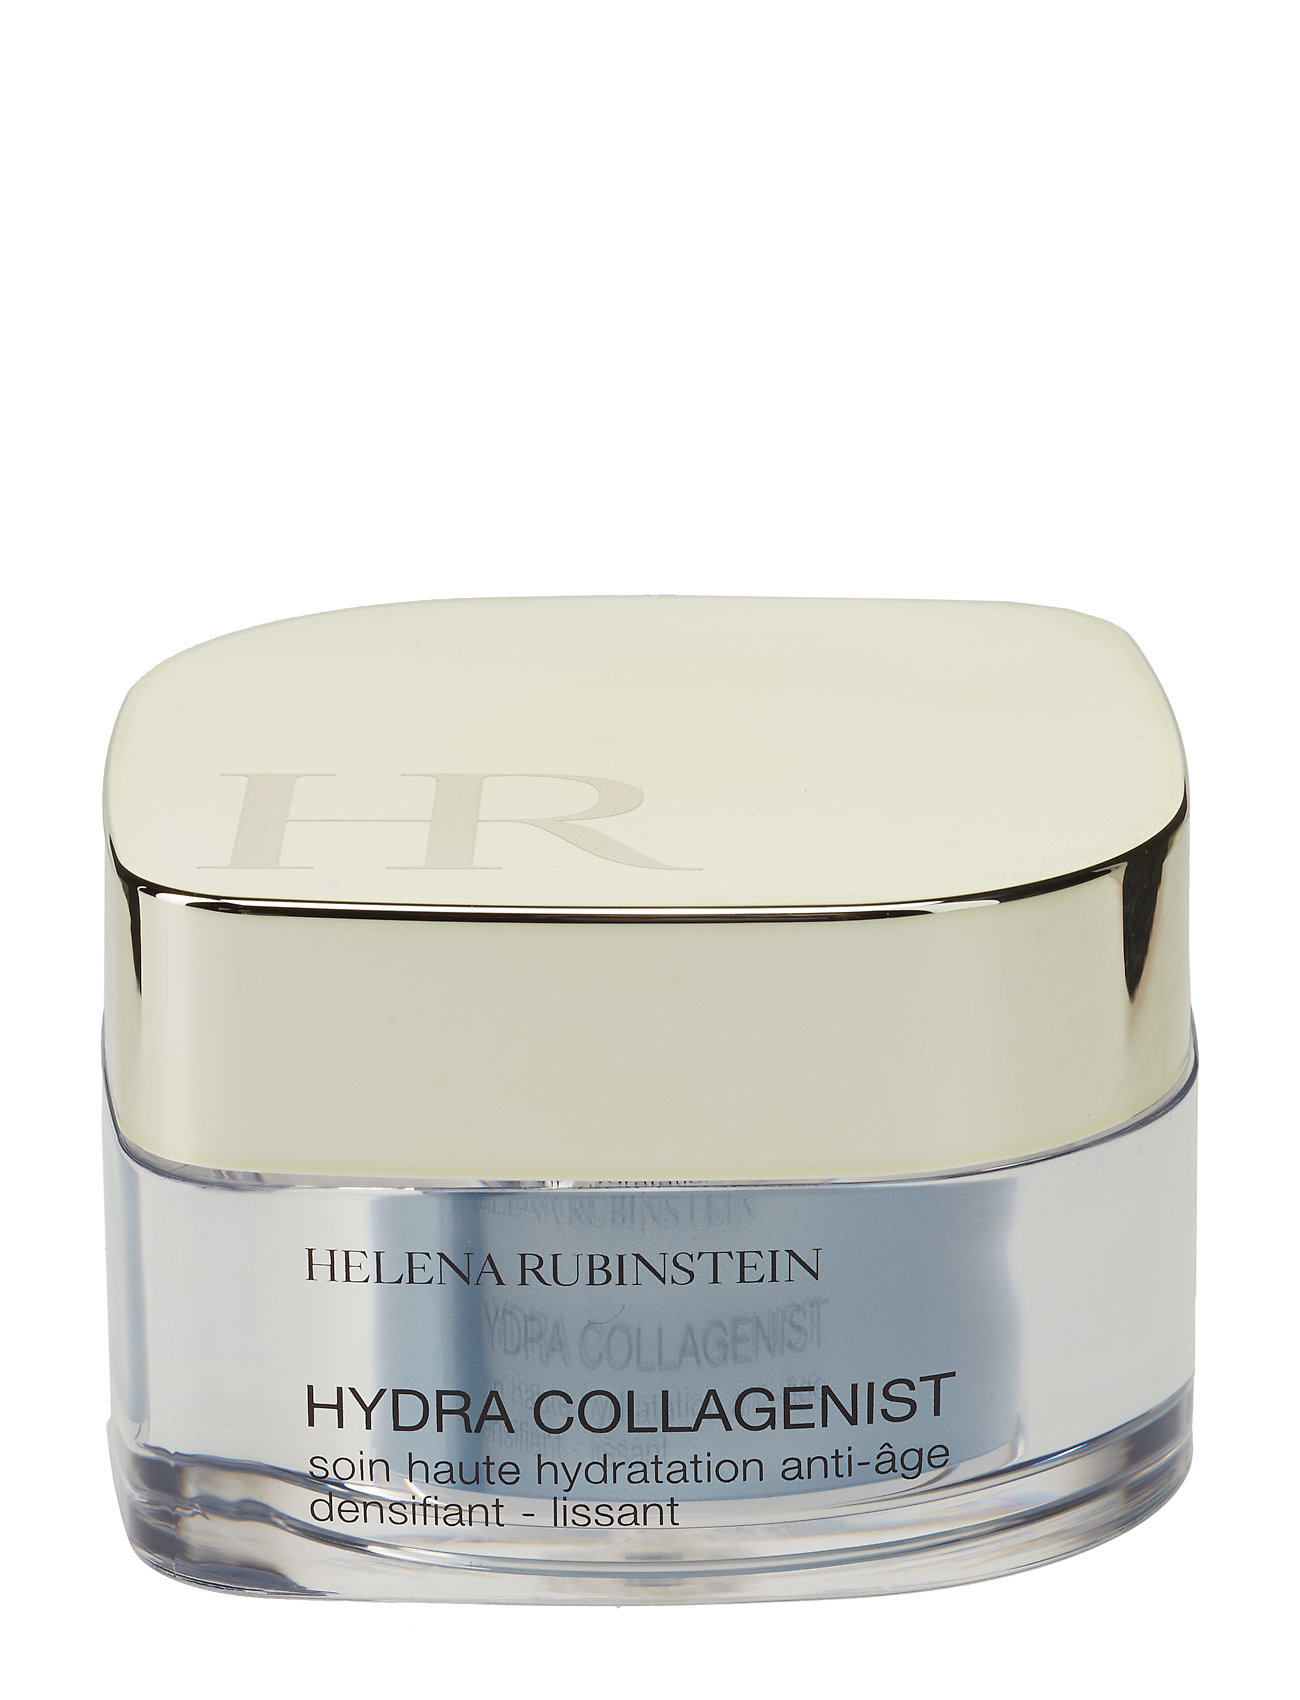 Image of Collagenist Hydra Cream Normal Skin 50 Ml Beauty WOMEN Skin Care Face Day Creams Nude Helena Rubinstein (3197995407)